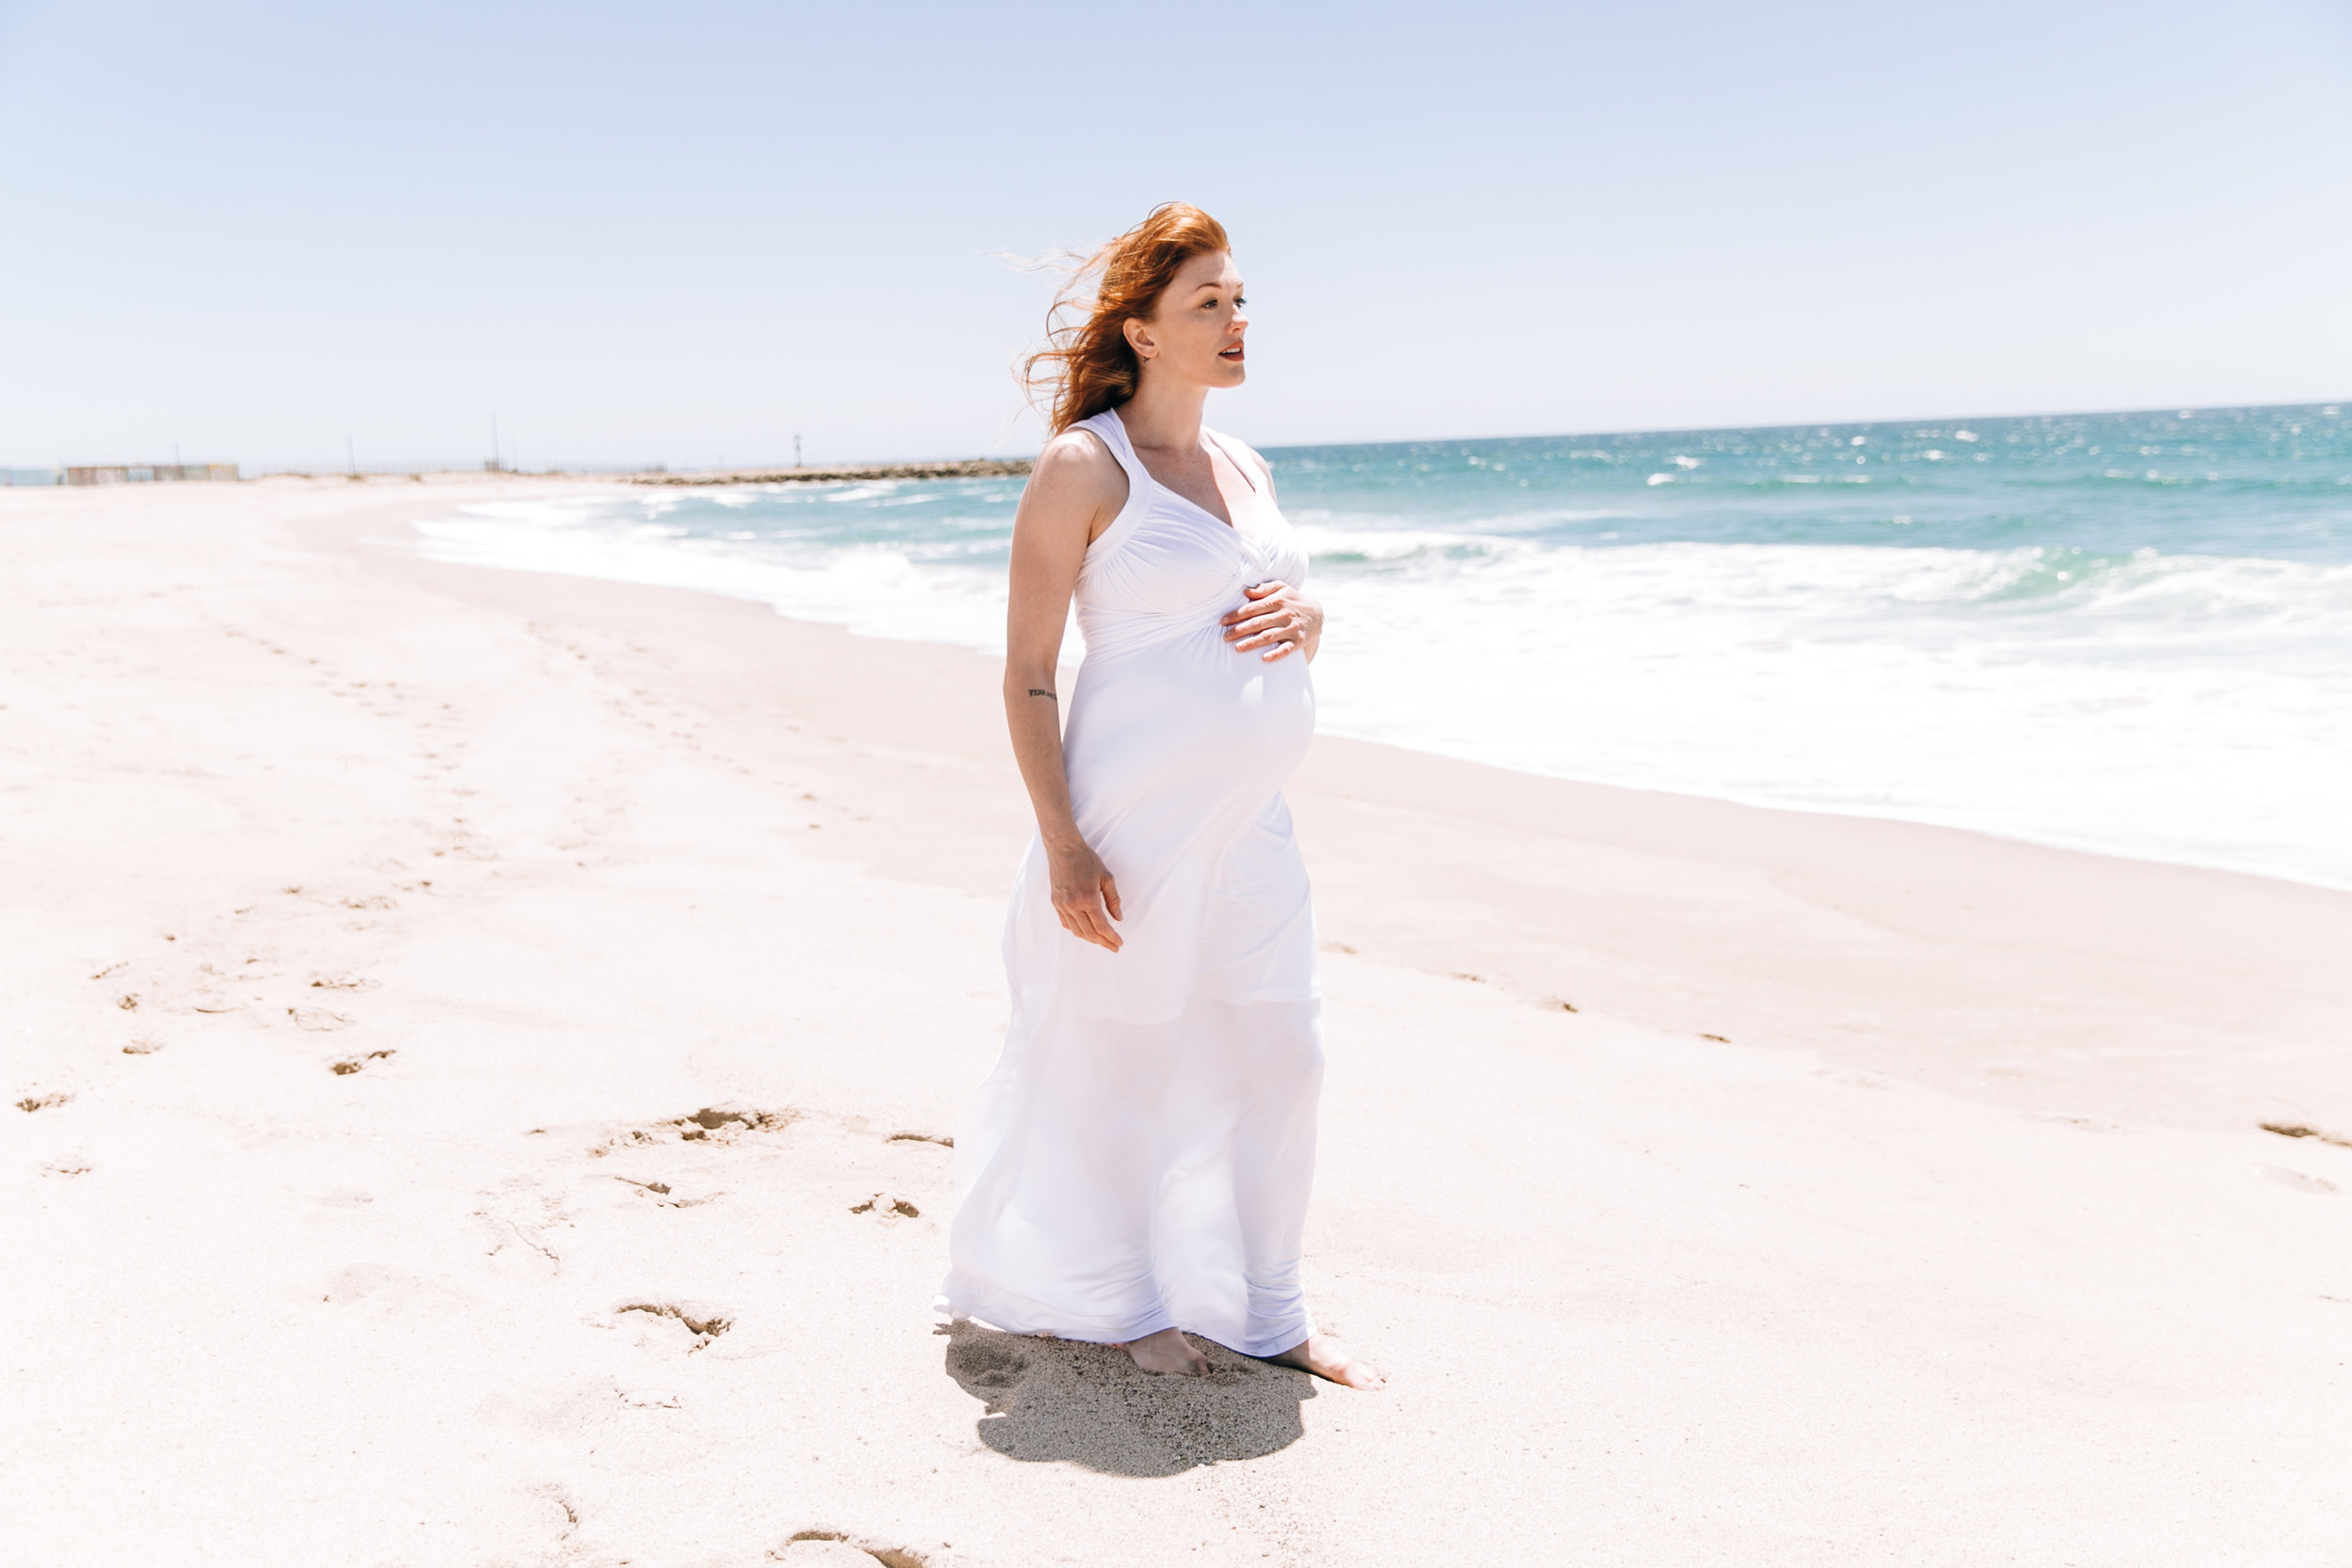 Oxnard maternity photographer, SoCal maternity photographer, Southern California maternity photographer, Los Angeles maternity photographer, Oxnard family shoot Oxnard family photographer, LA family